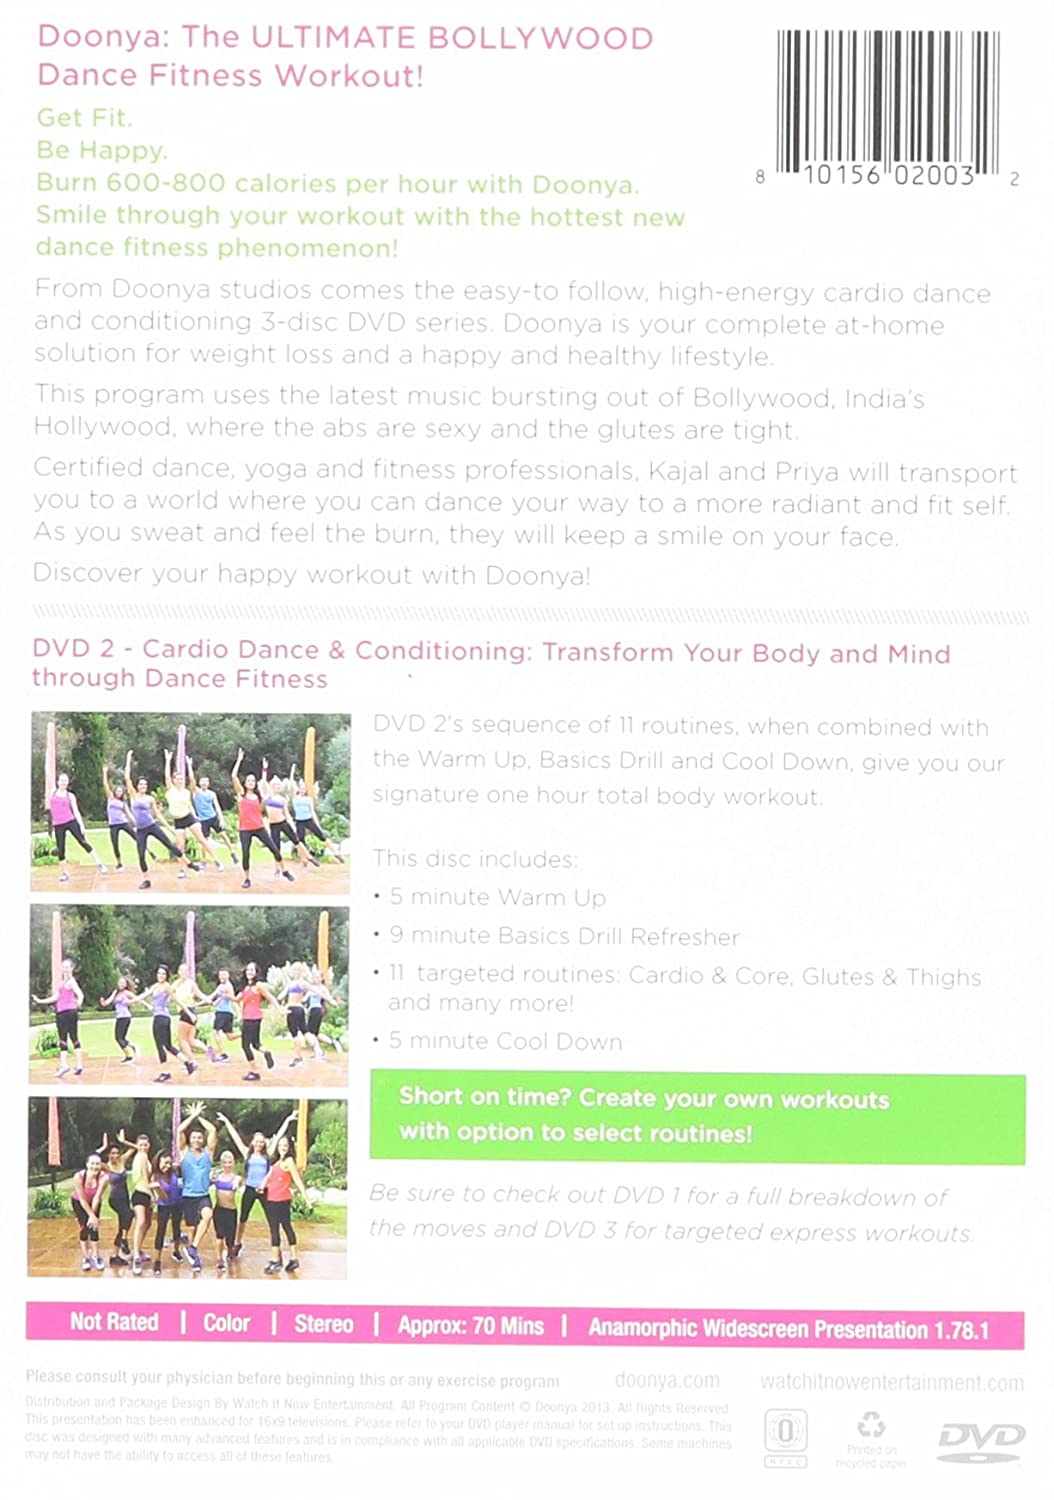 Amazon.com: Doonya: The Bollywood Dance Workout - Cardio Dance &  Conditioning: Kajal Desai, Priya Pandya, Darren Capik: Movies & TV